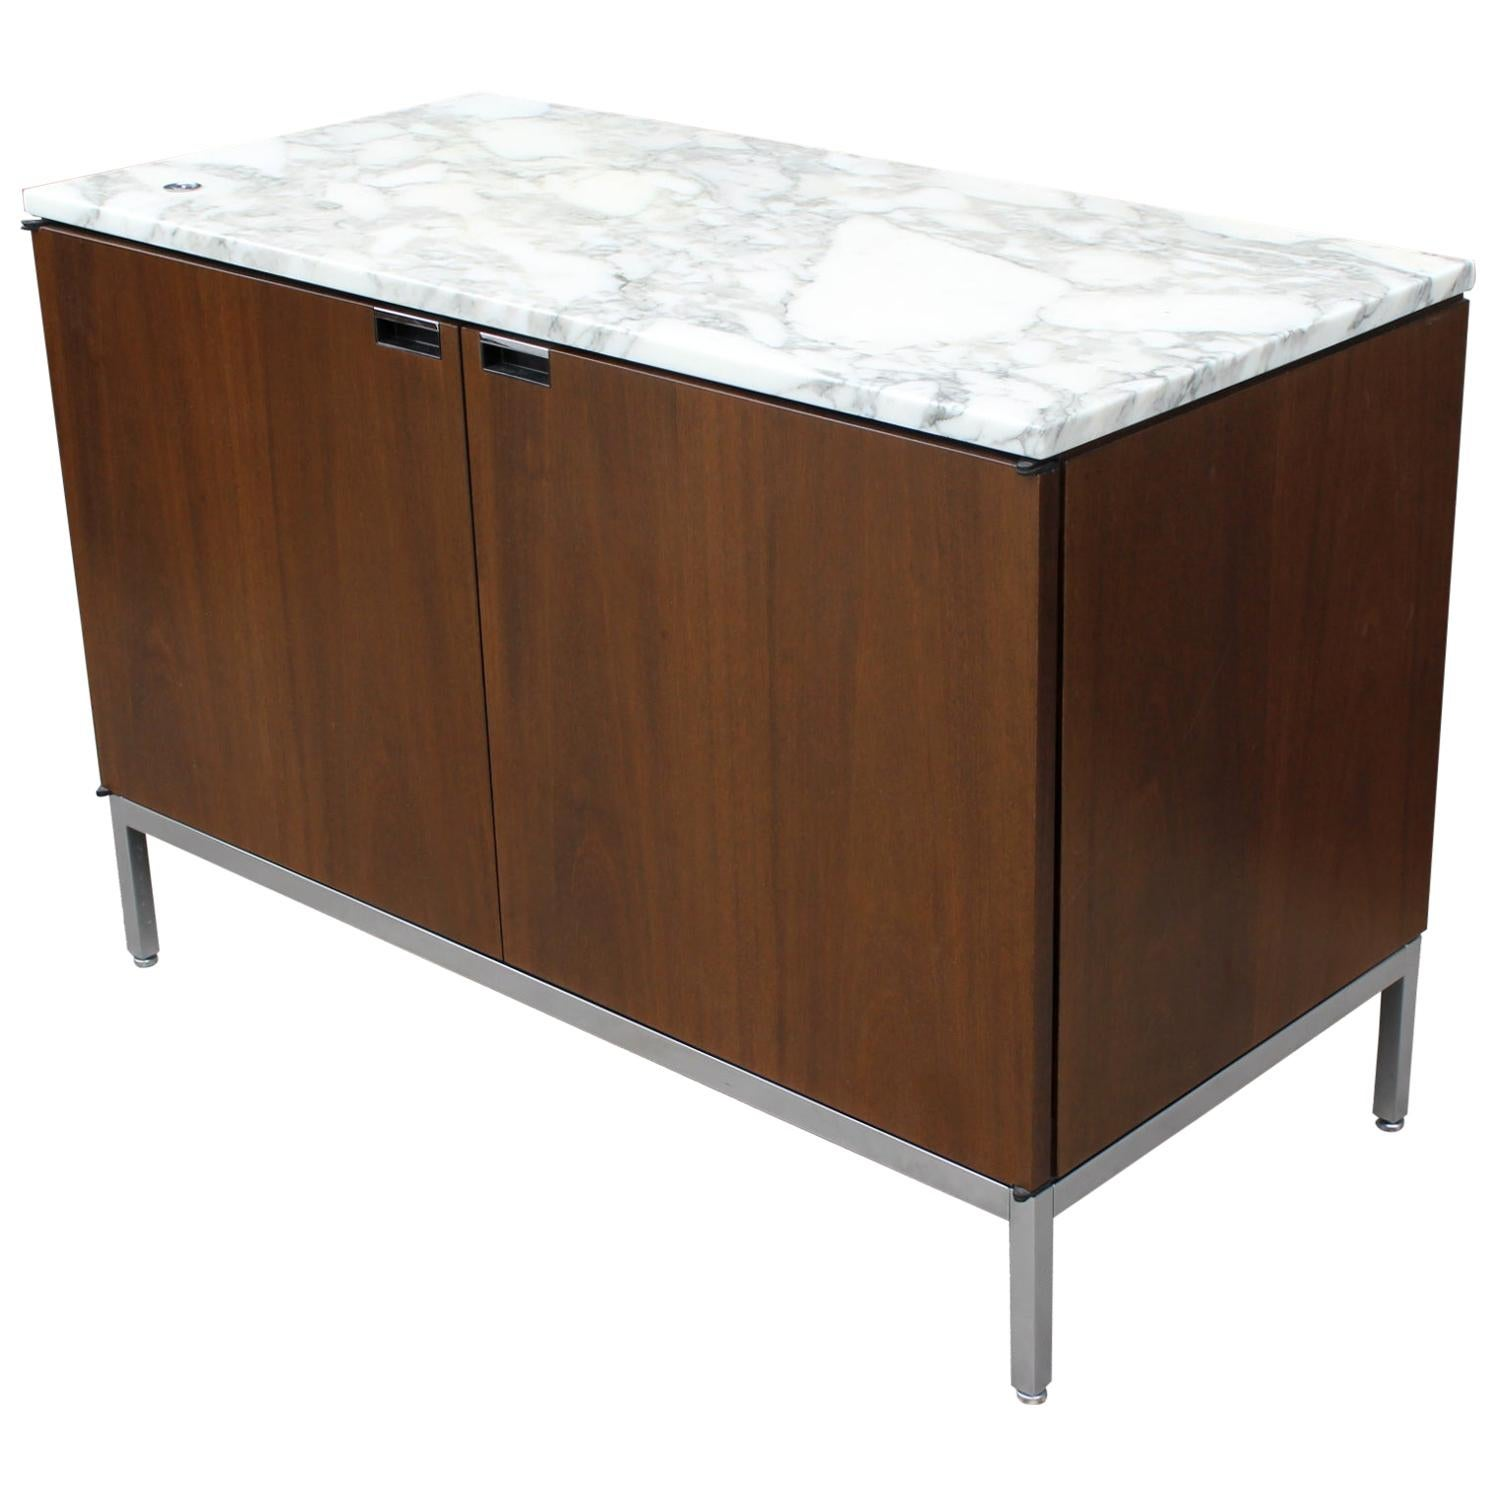 Knoll Marble Top Credenza in Walnut and Calacatta Designed by Florence Knoll